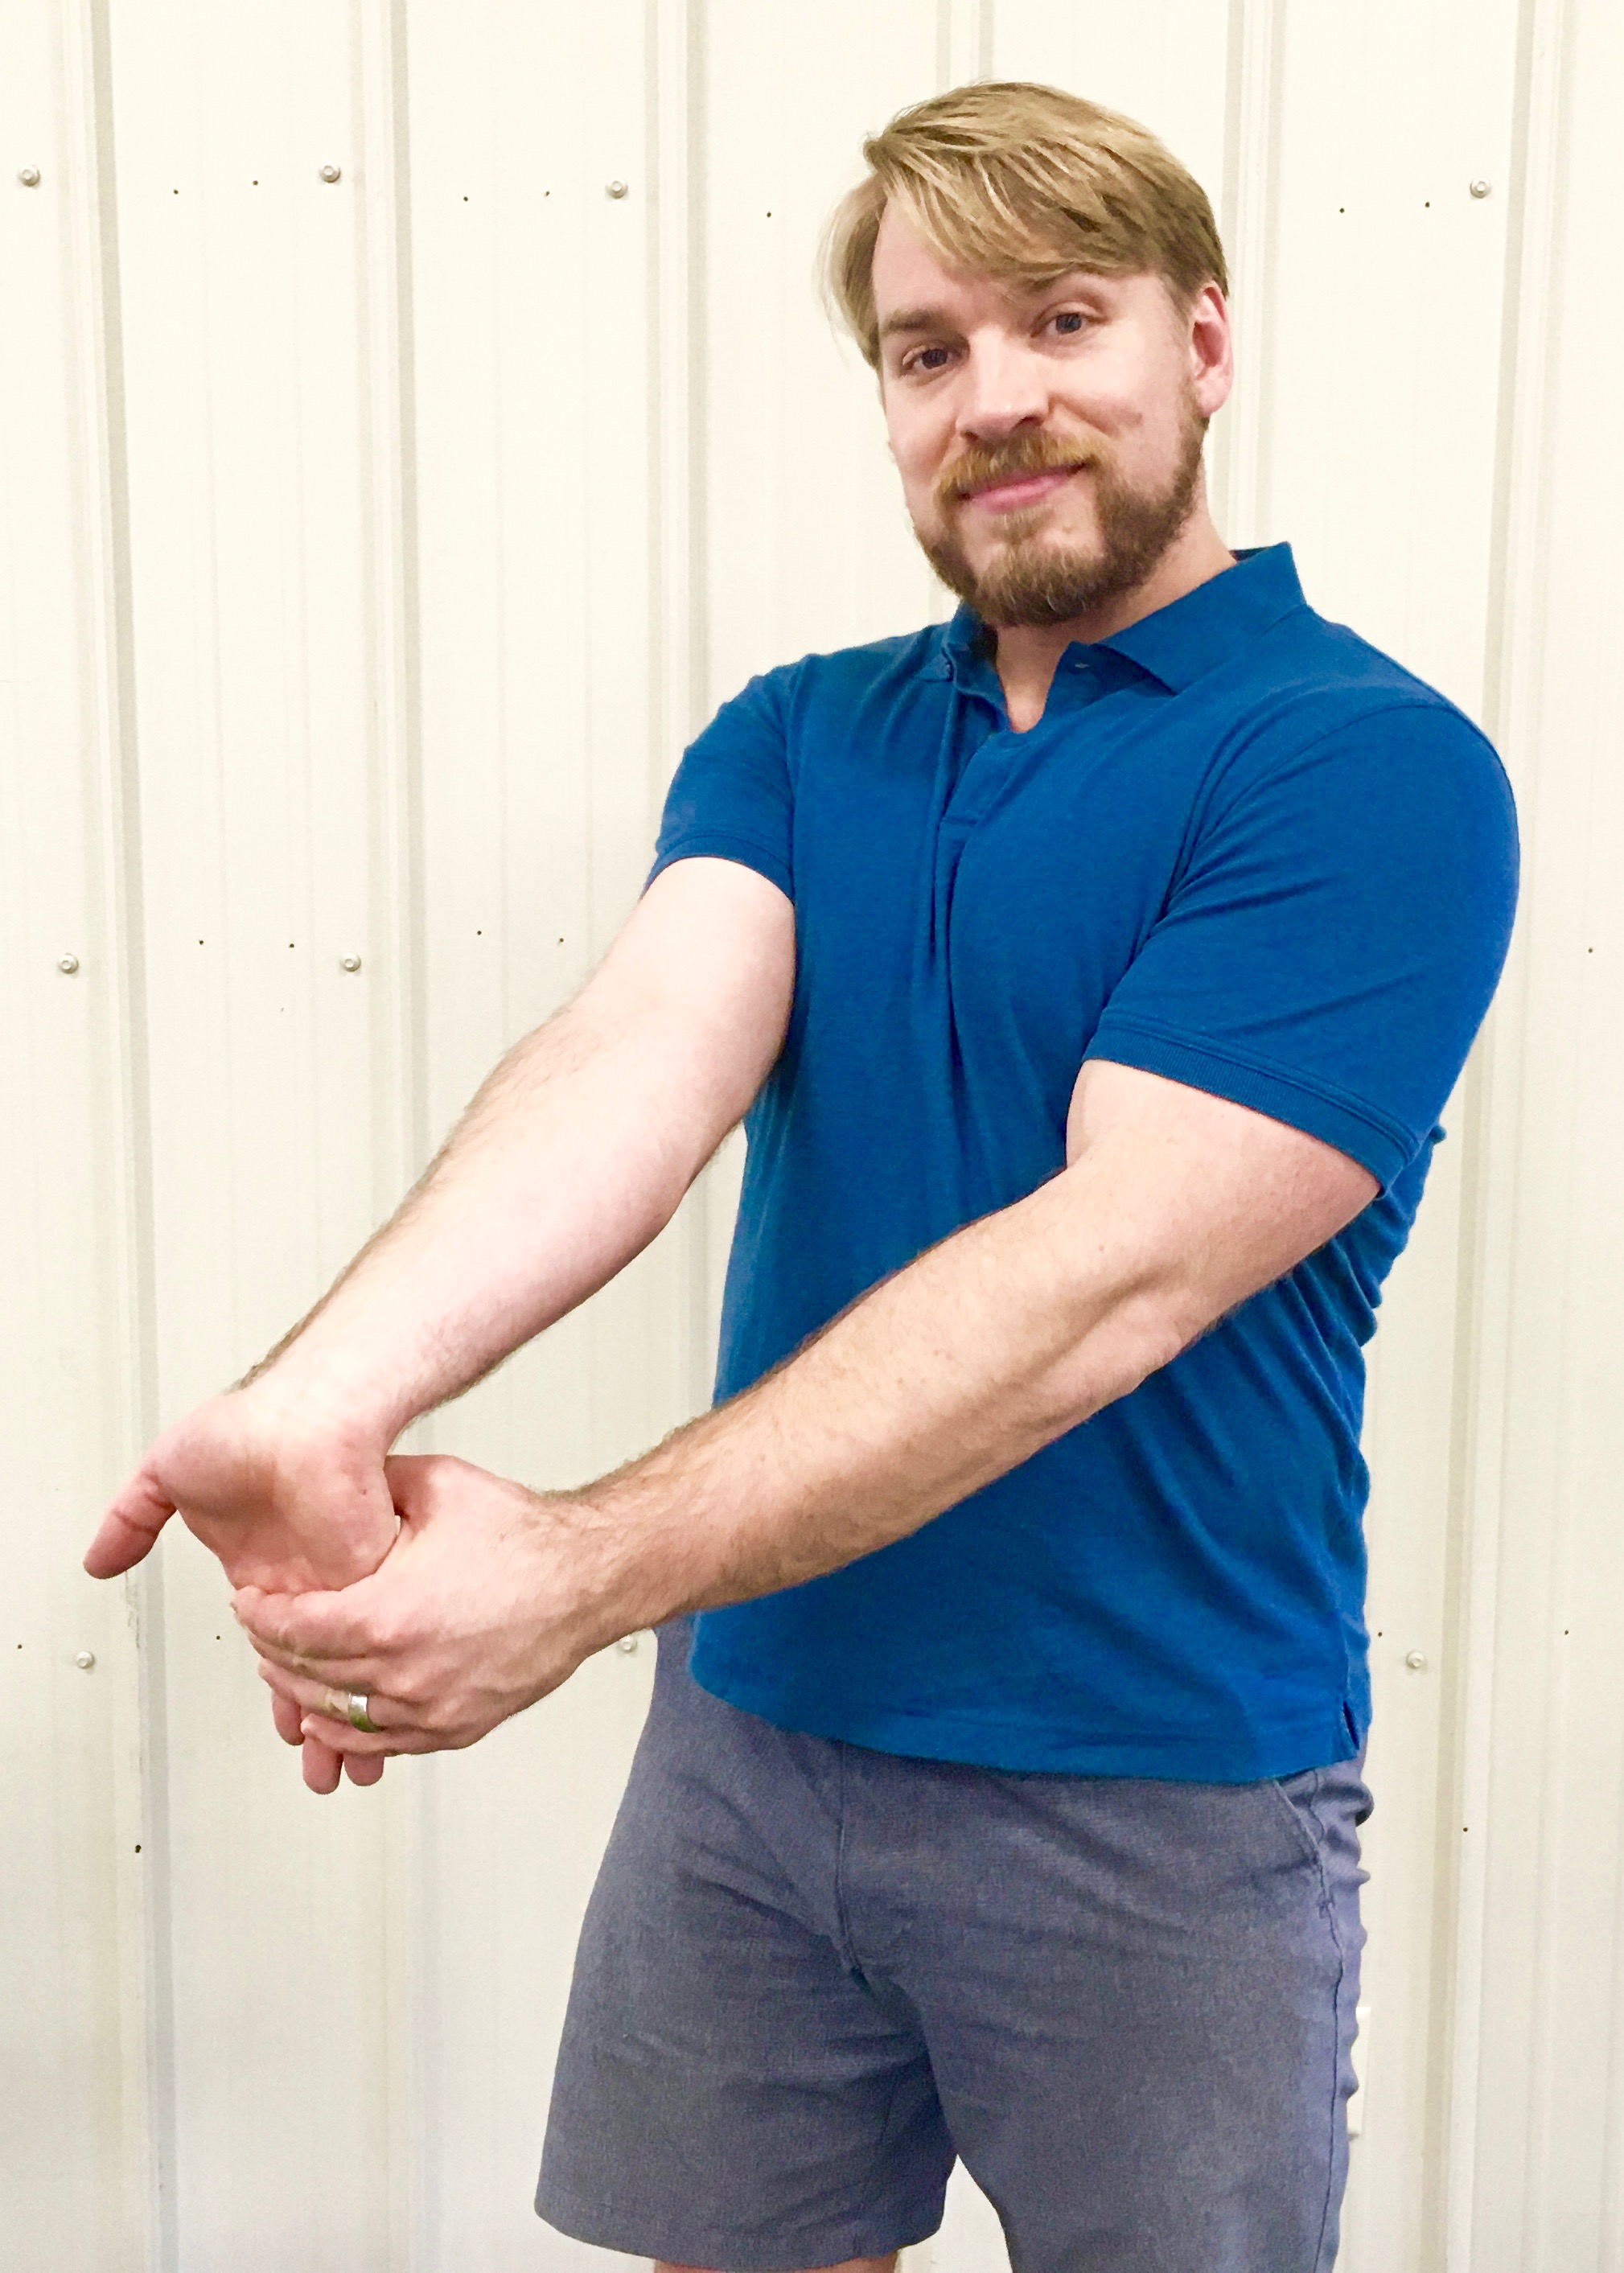 Test 2: Straighten your injured arm with palm facing up. Use the opposite hand to bend your hand down at the wrist but resist it with the injured arm.